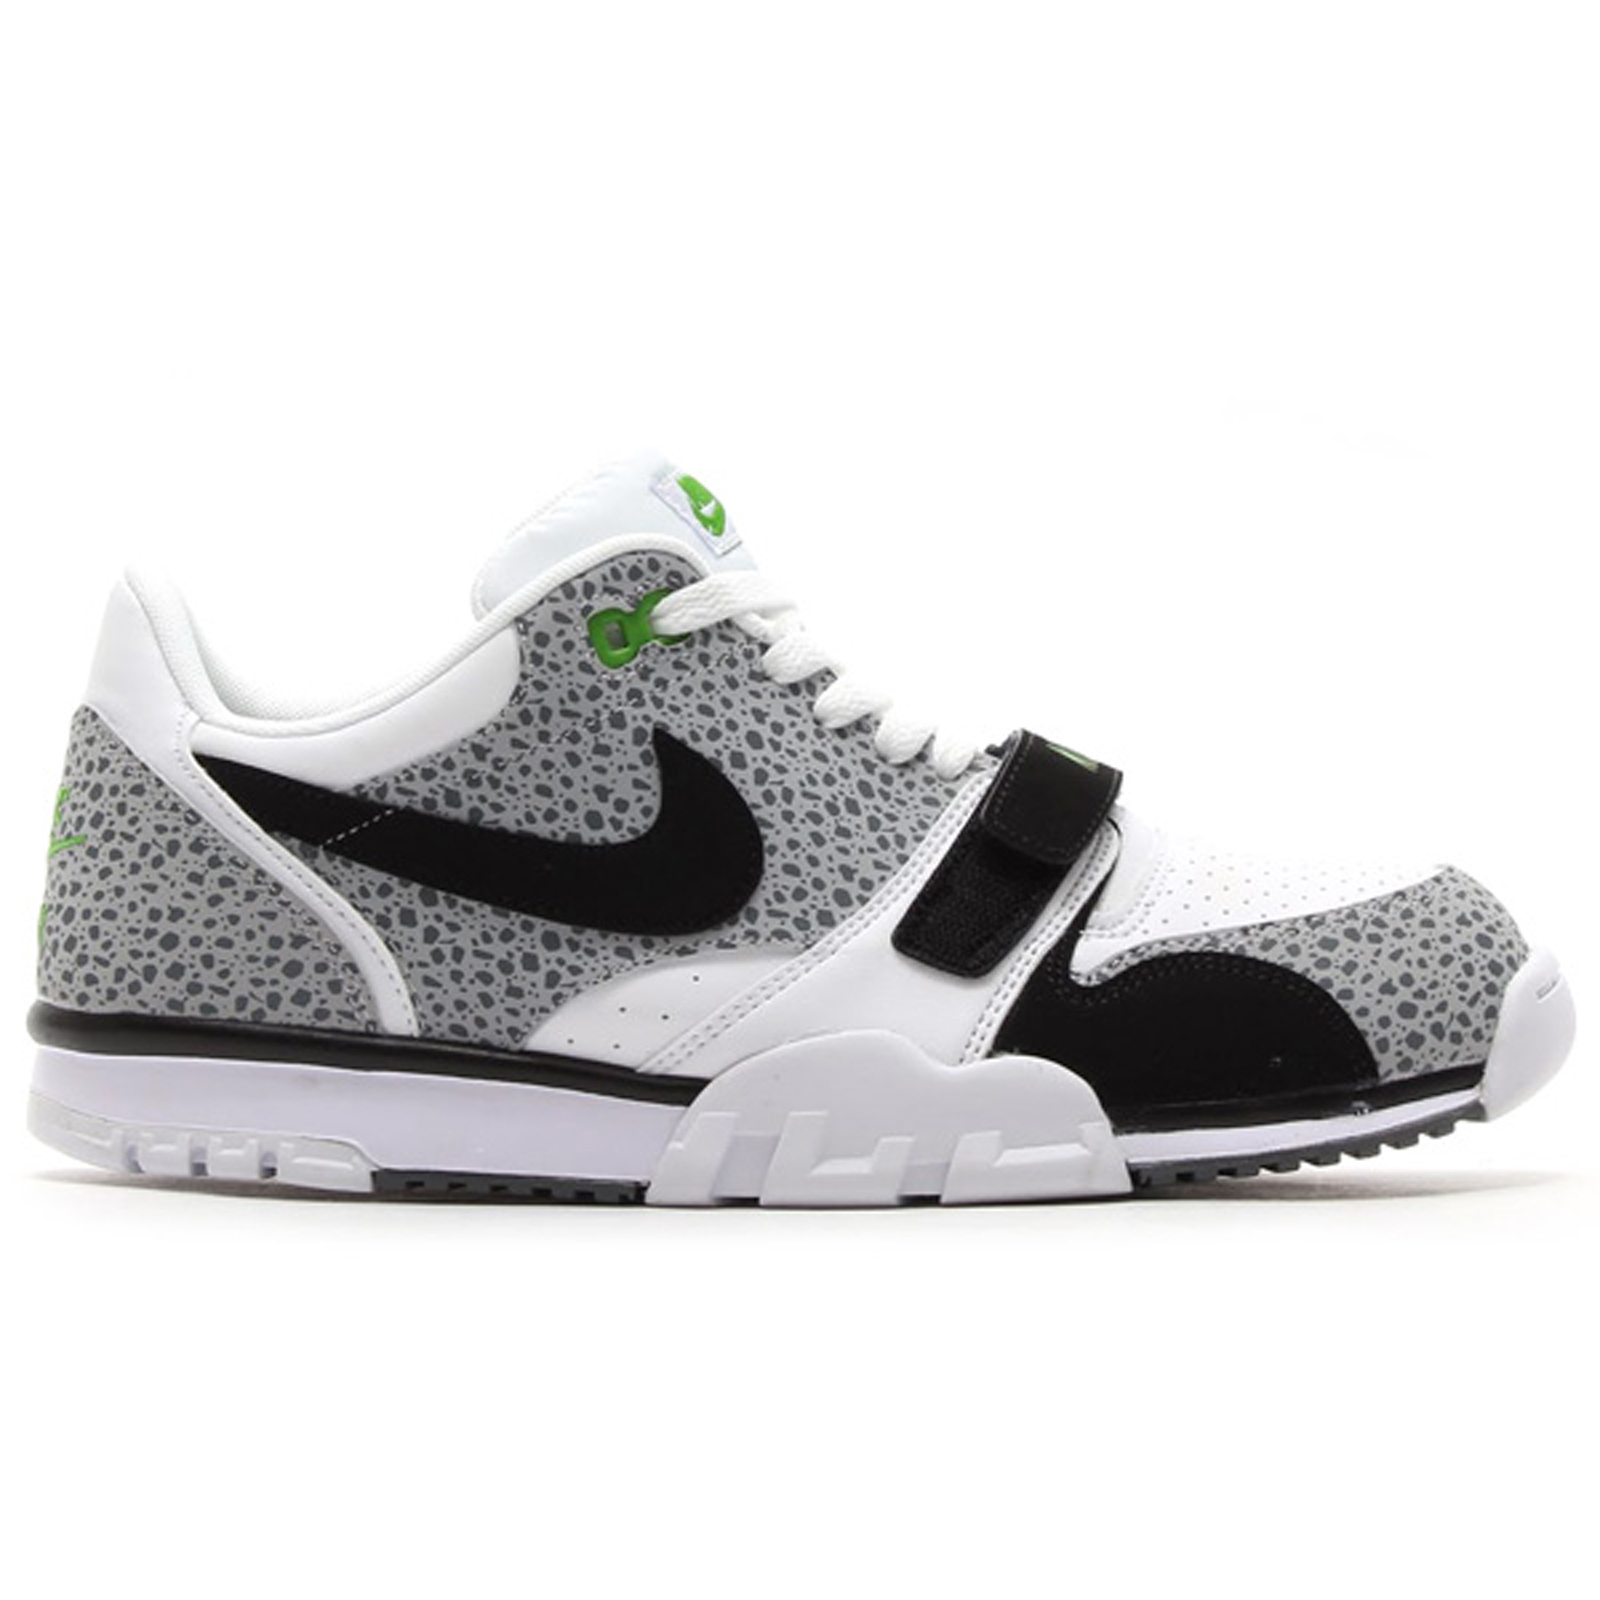 new nike air trainer 1 low st safari pack chlorophyll. Black Bedroom Furniture Sets. Home Design Ideas